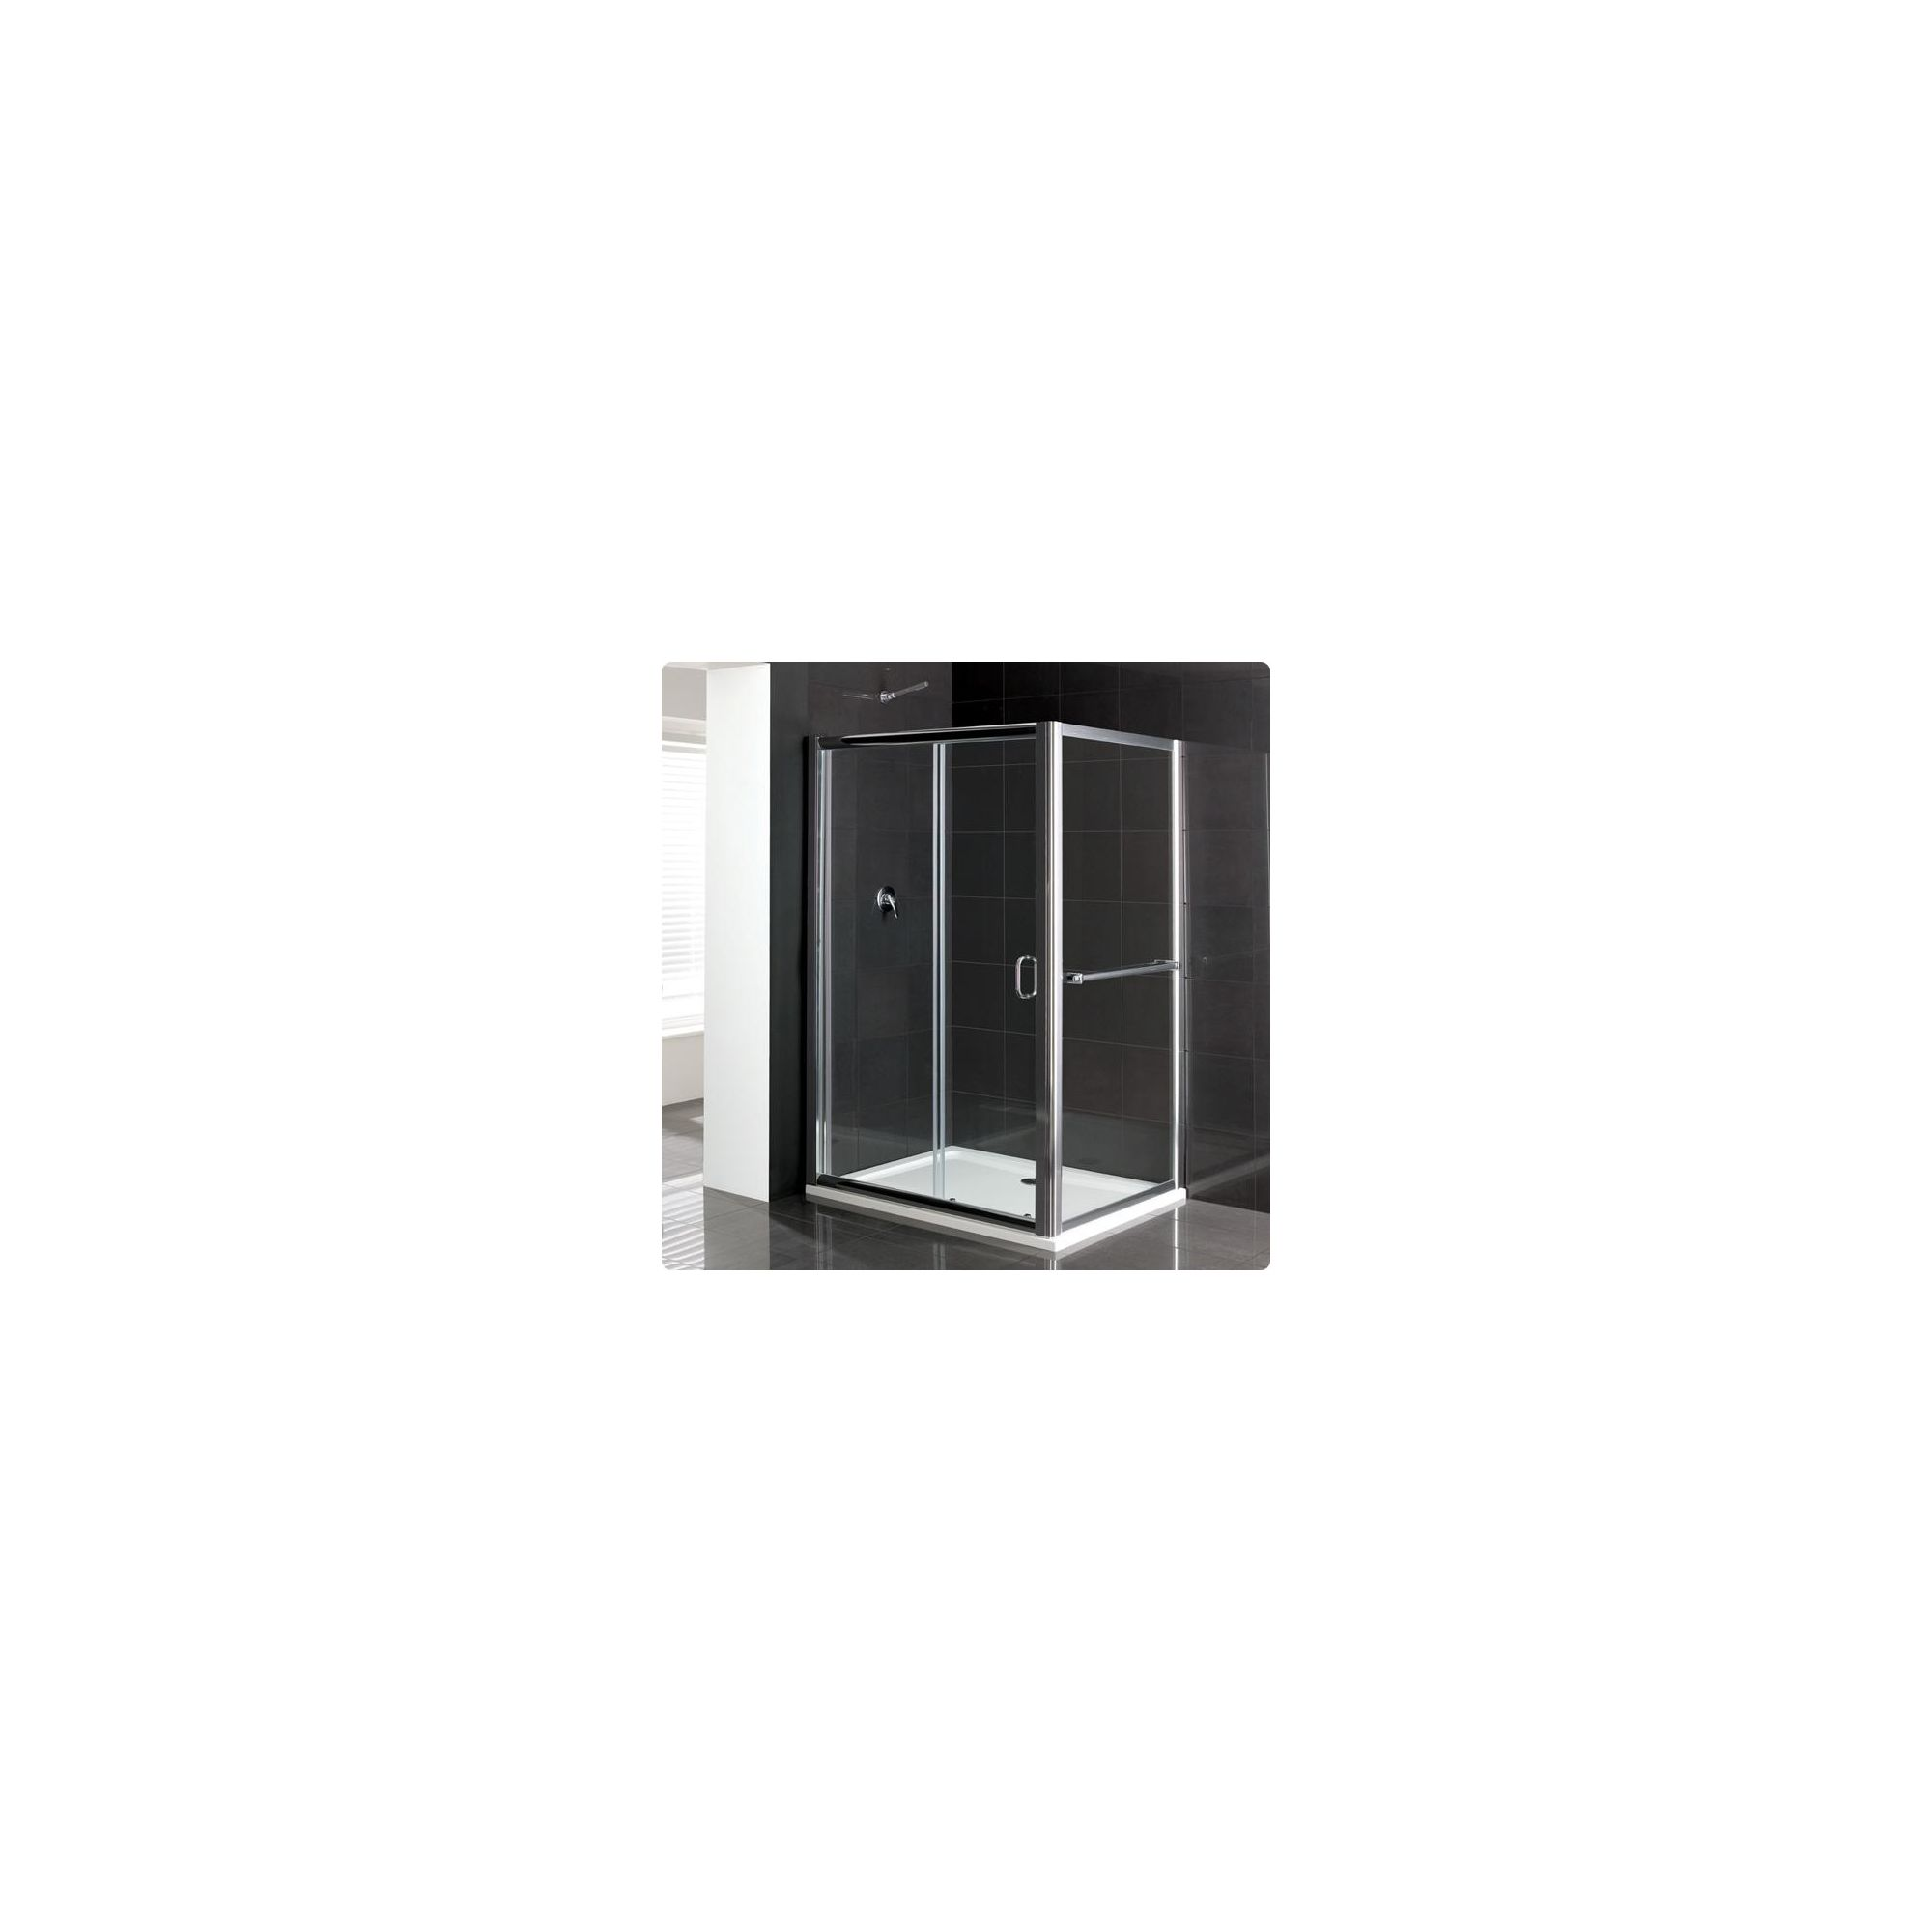 Duchy Elite Silver Sliding Door Shower Enclosure with Towel Rail, 1000mm x 900mm, Standard Tray, 6mm Glass at Tesco Direct